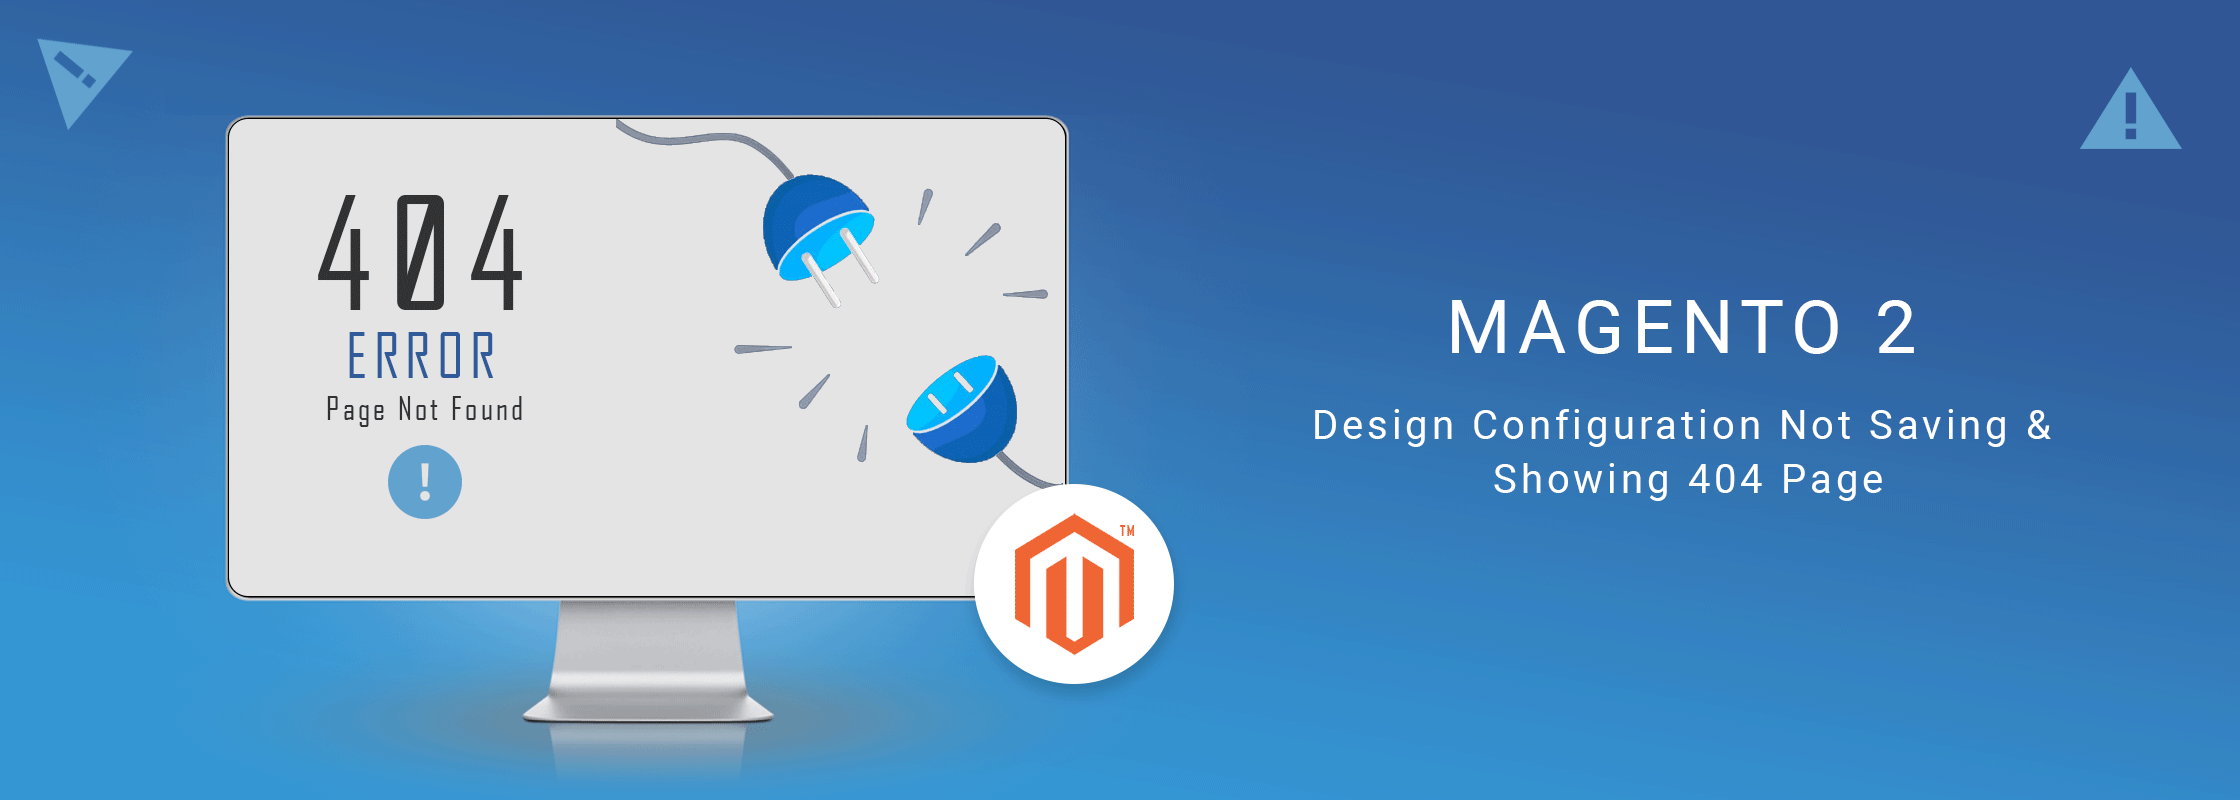 Magento 2 design configuration not saving and showing 404 page